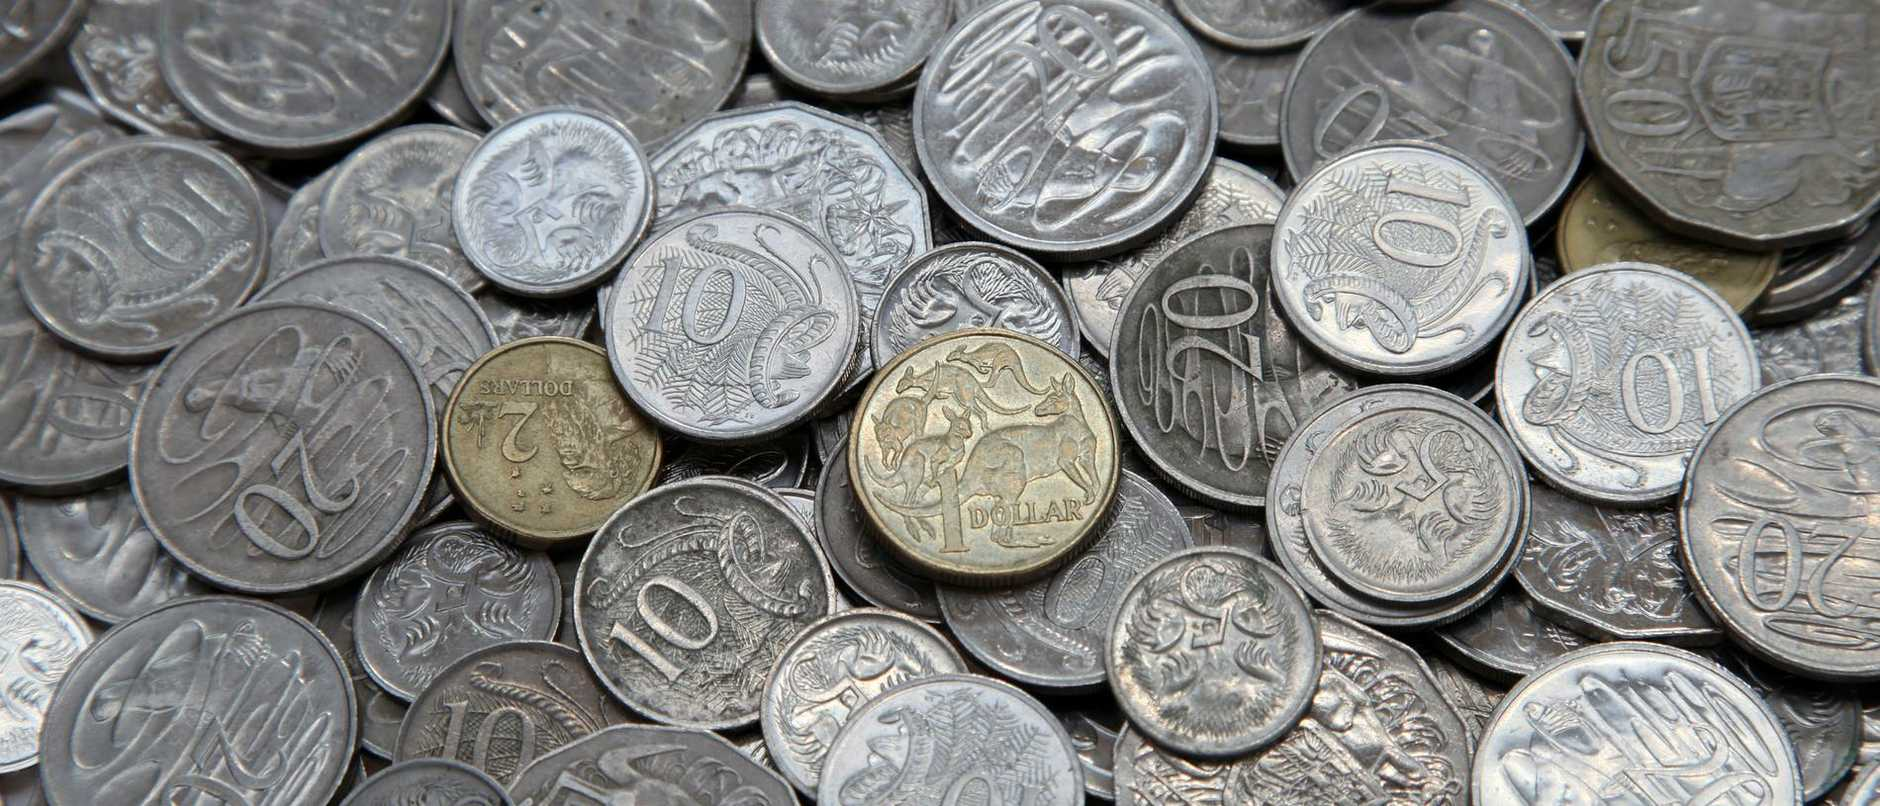 Secert message in 50 cent coin revealed. Picture: iStock